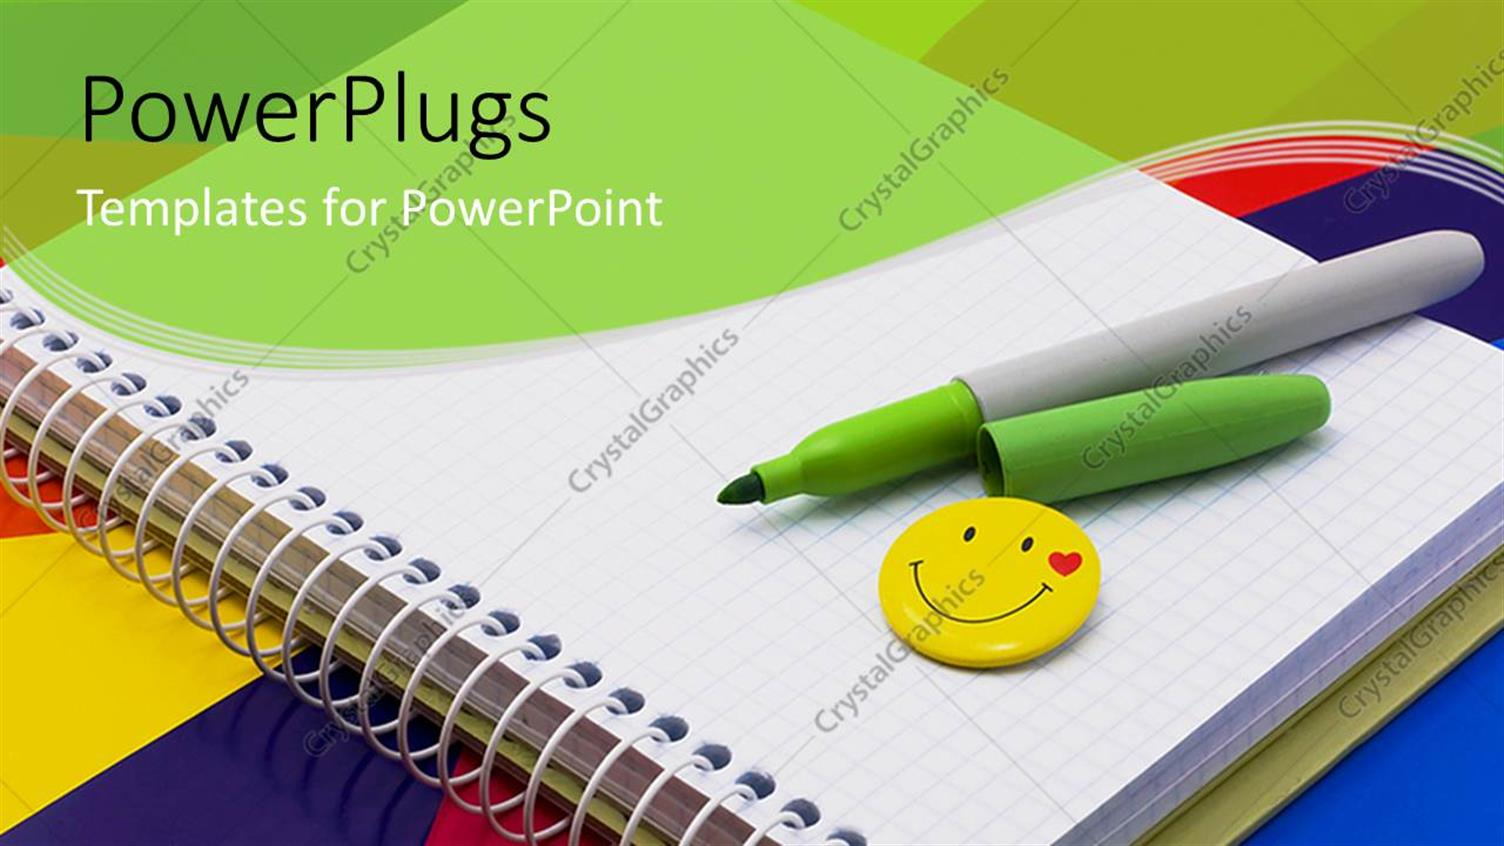 PowerPoint Template Displaying Notebook, Felt-tip Pen of Green, Badge-Smile on Multi Color Background